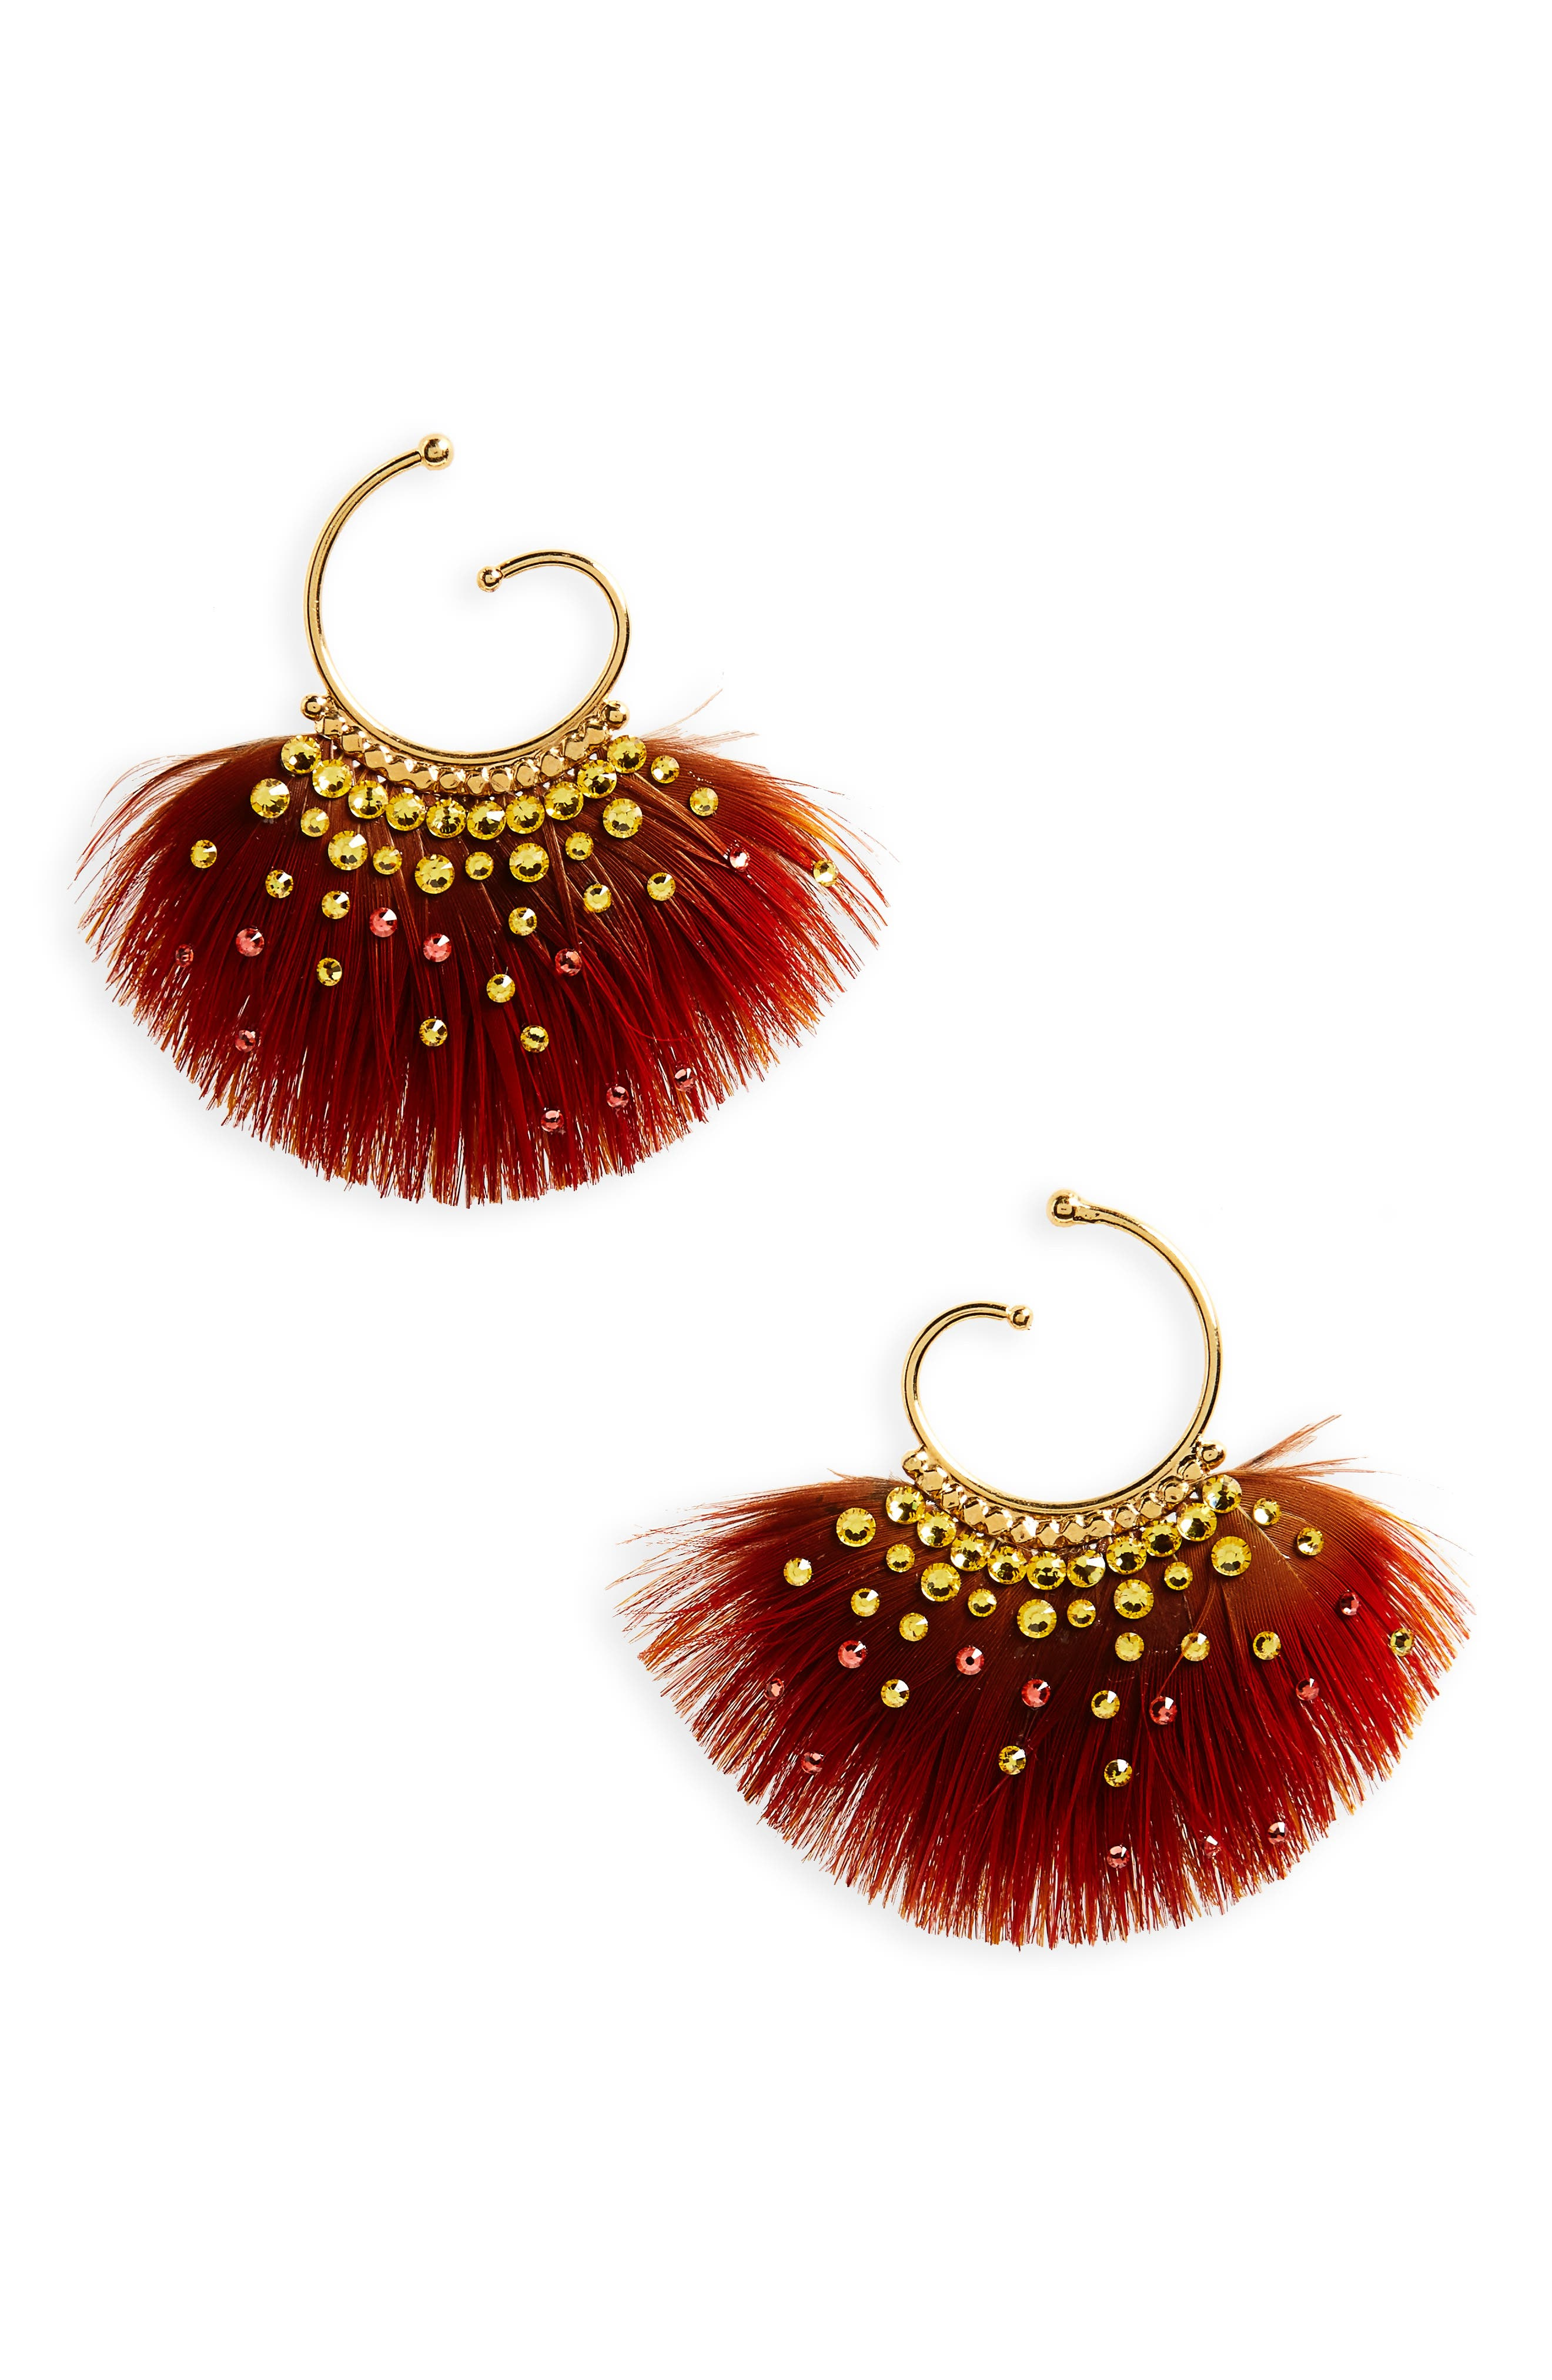 Buzios Small Feather Earrings,                         Main,                         color, Orange/ Gold